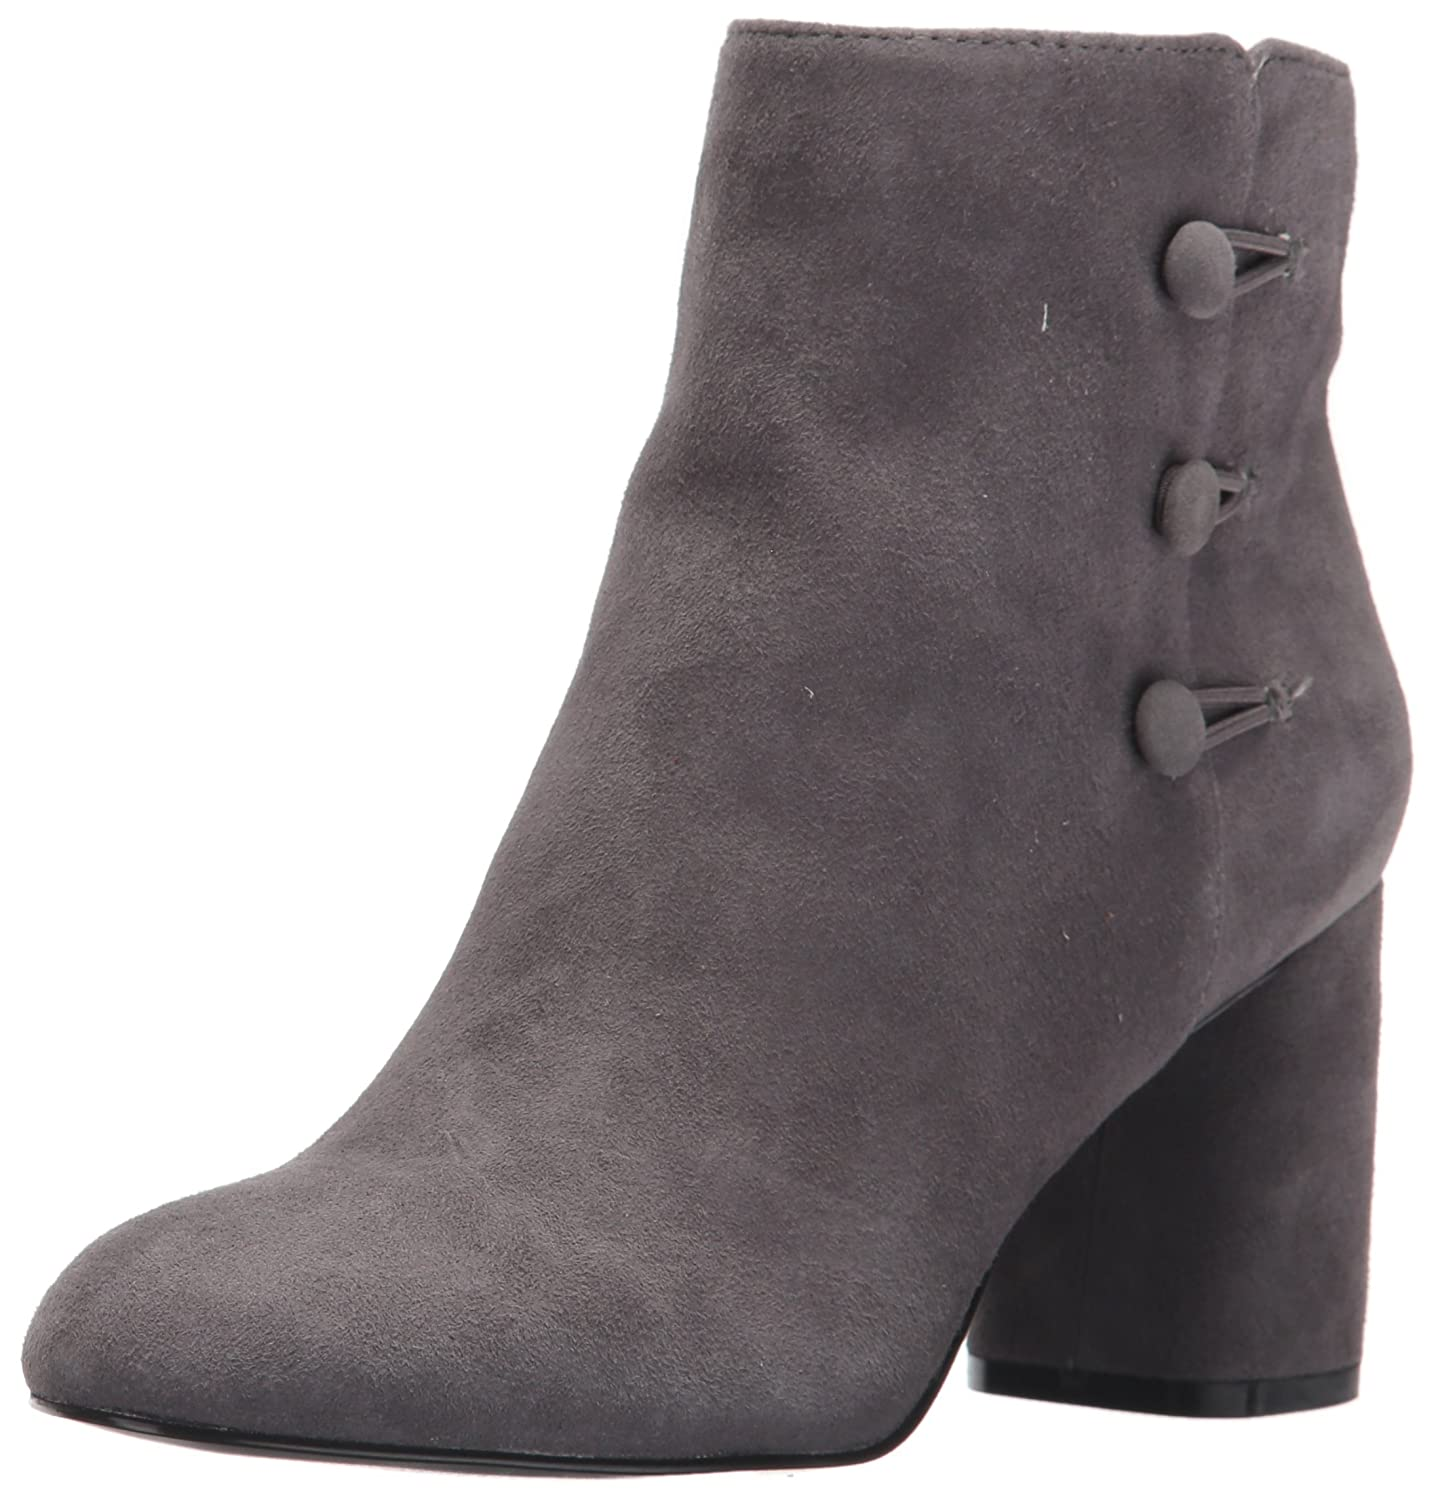 Nine West Women's Khraine Suede Ankle Boot B071HQGKBH 11.5 B(M) US|Grey/Grey Suede